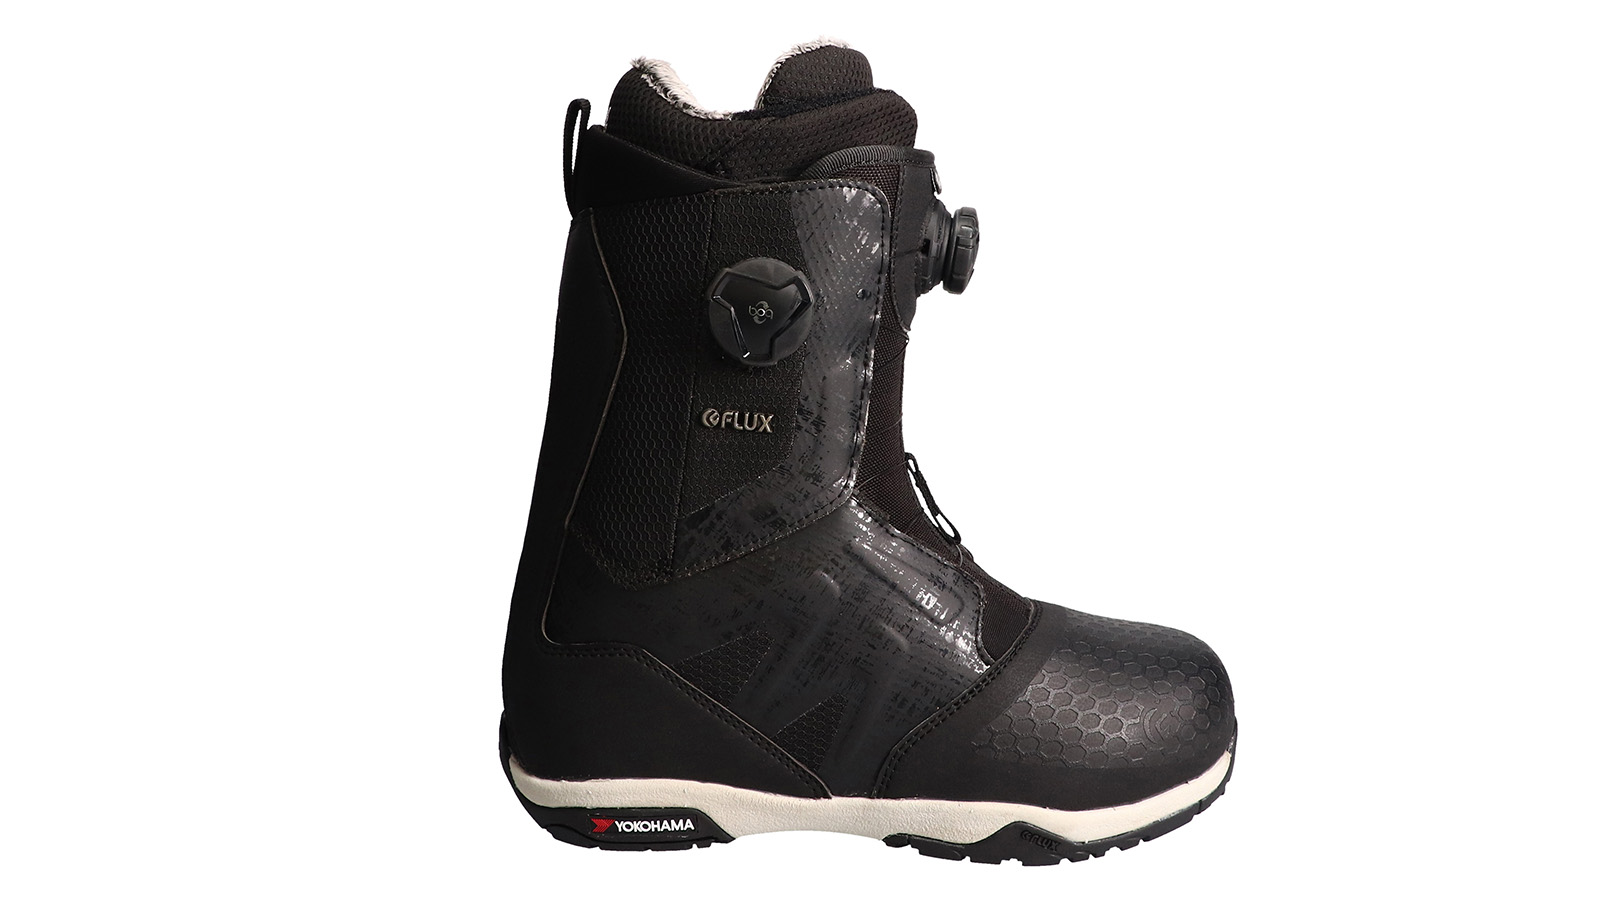 Flux FW20/21 Snowboard Boots